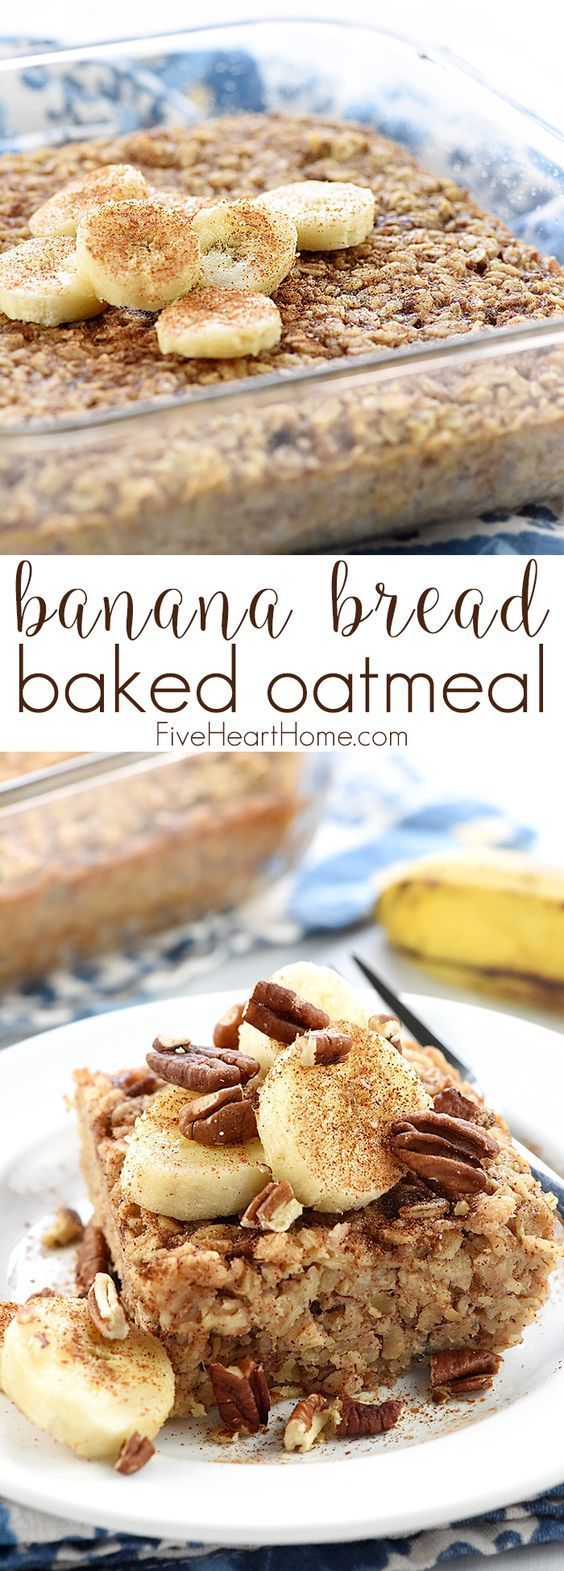 Banana Bread Baked Oatmeal ~ boasts the delicious flavor of banana bread, but it's made with wholesome oats, pecans, and coconut oil for a healthy, filling breakfast or brunch recipe! | http://FiveHeartHome.com